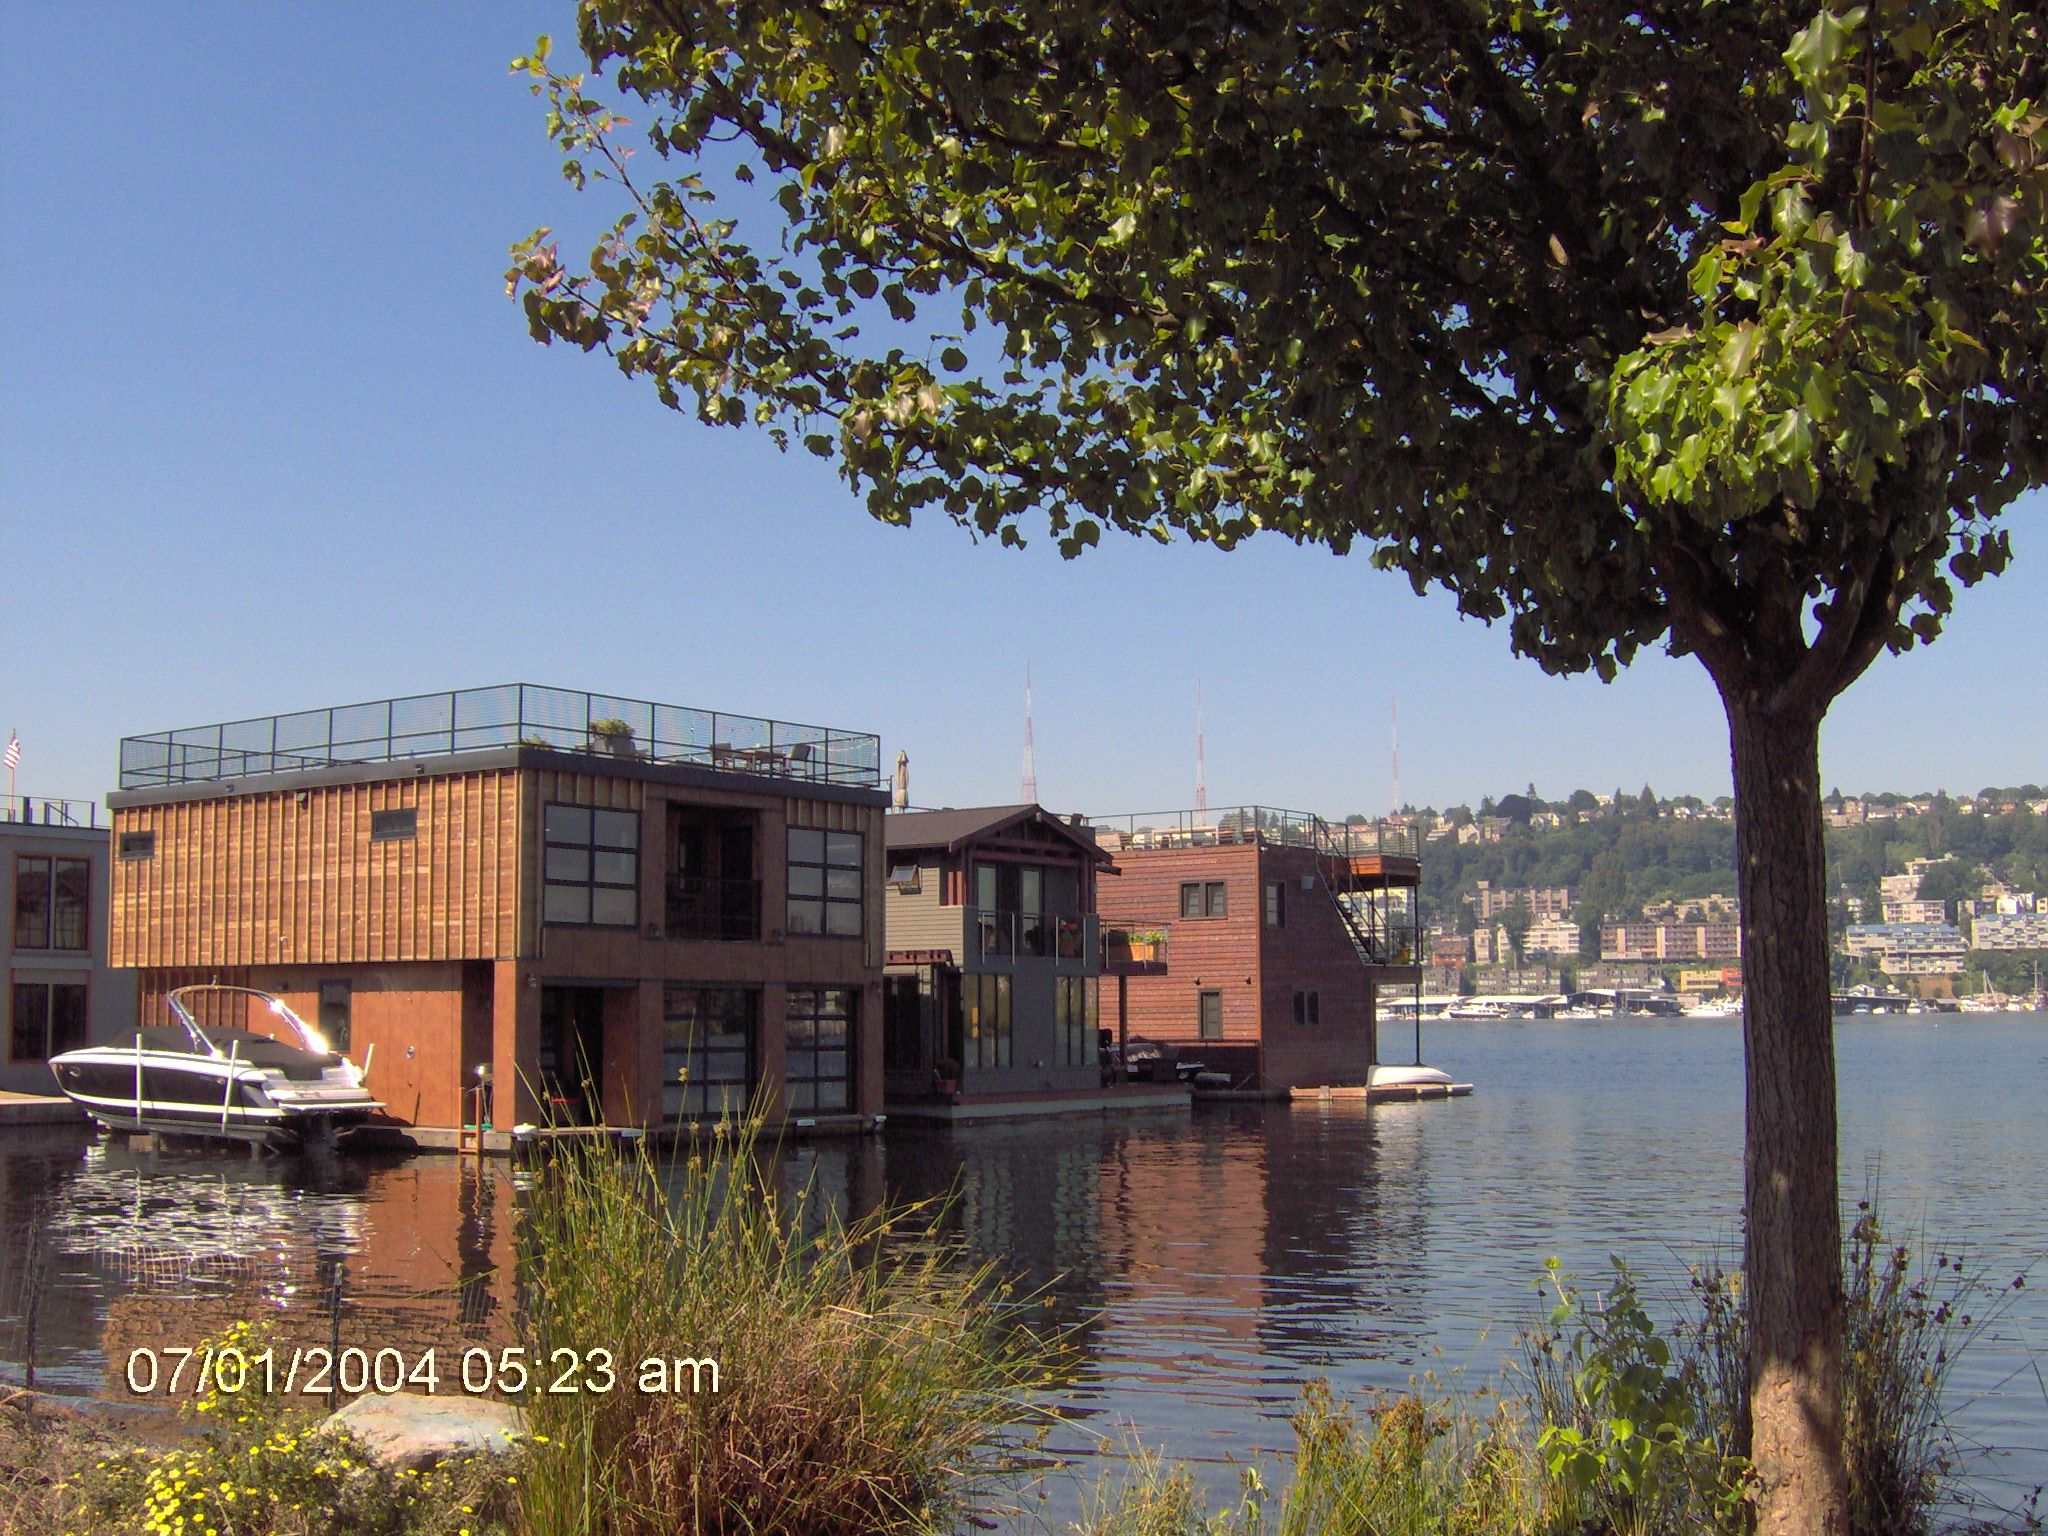 Houseboats In Seattle 5 Ways To Ensure An Enjoyable Houseboats Cruises On River House